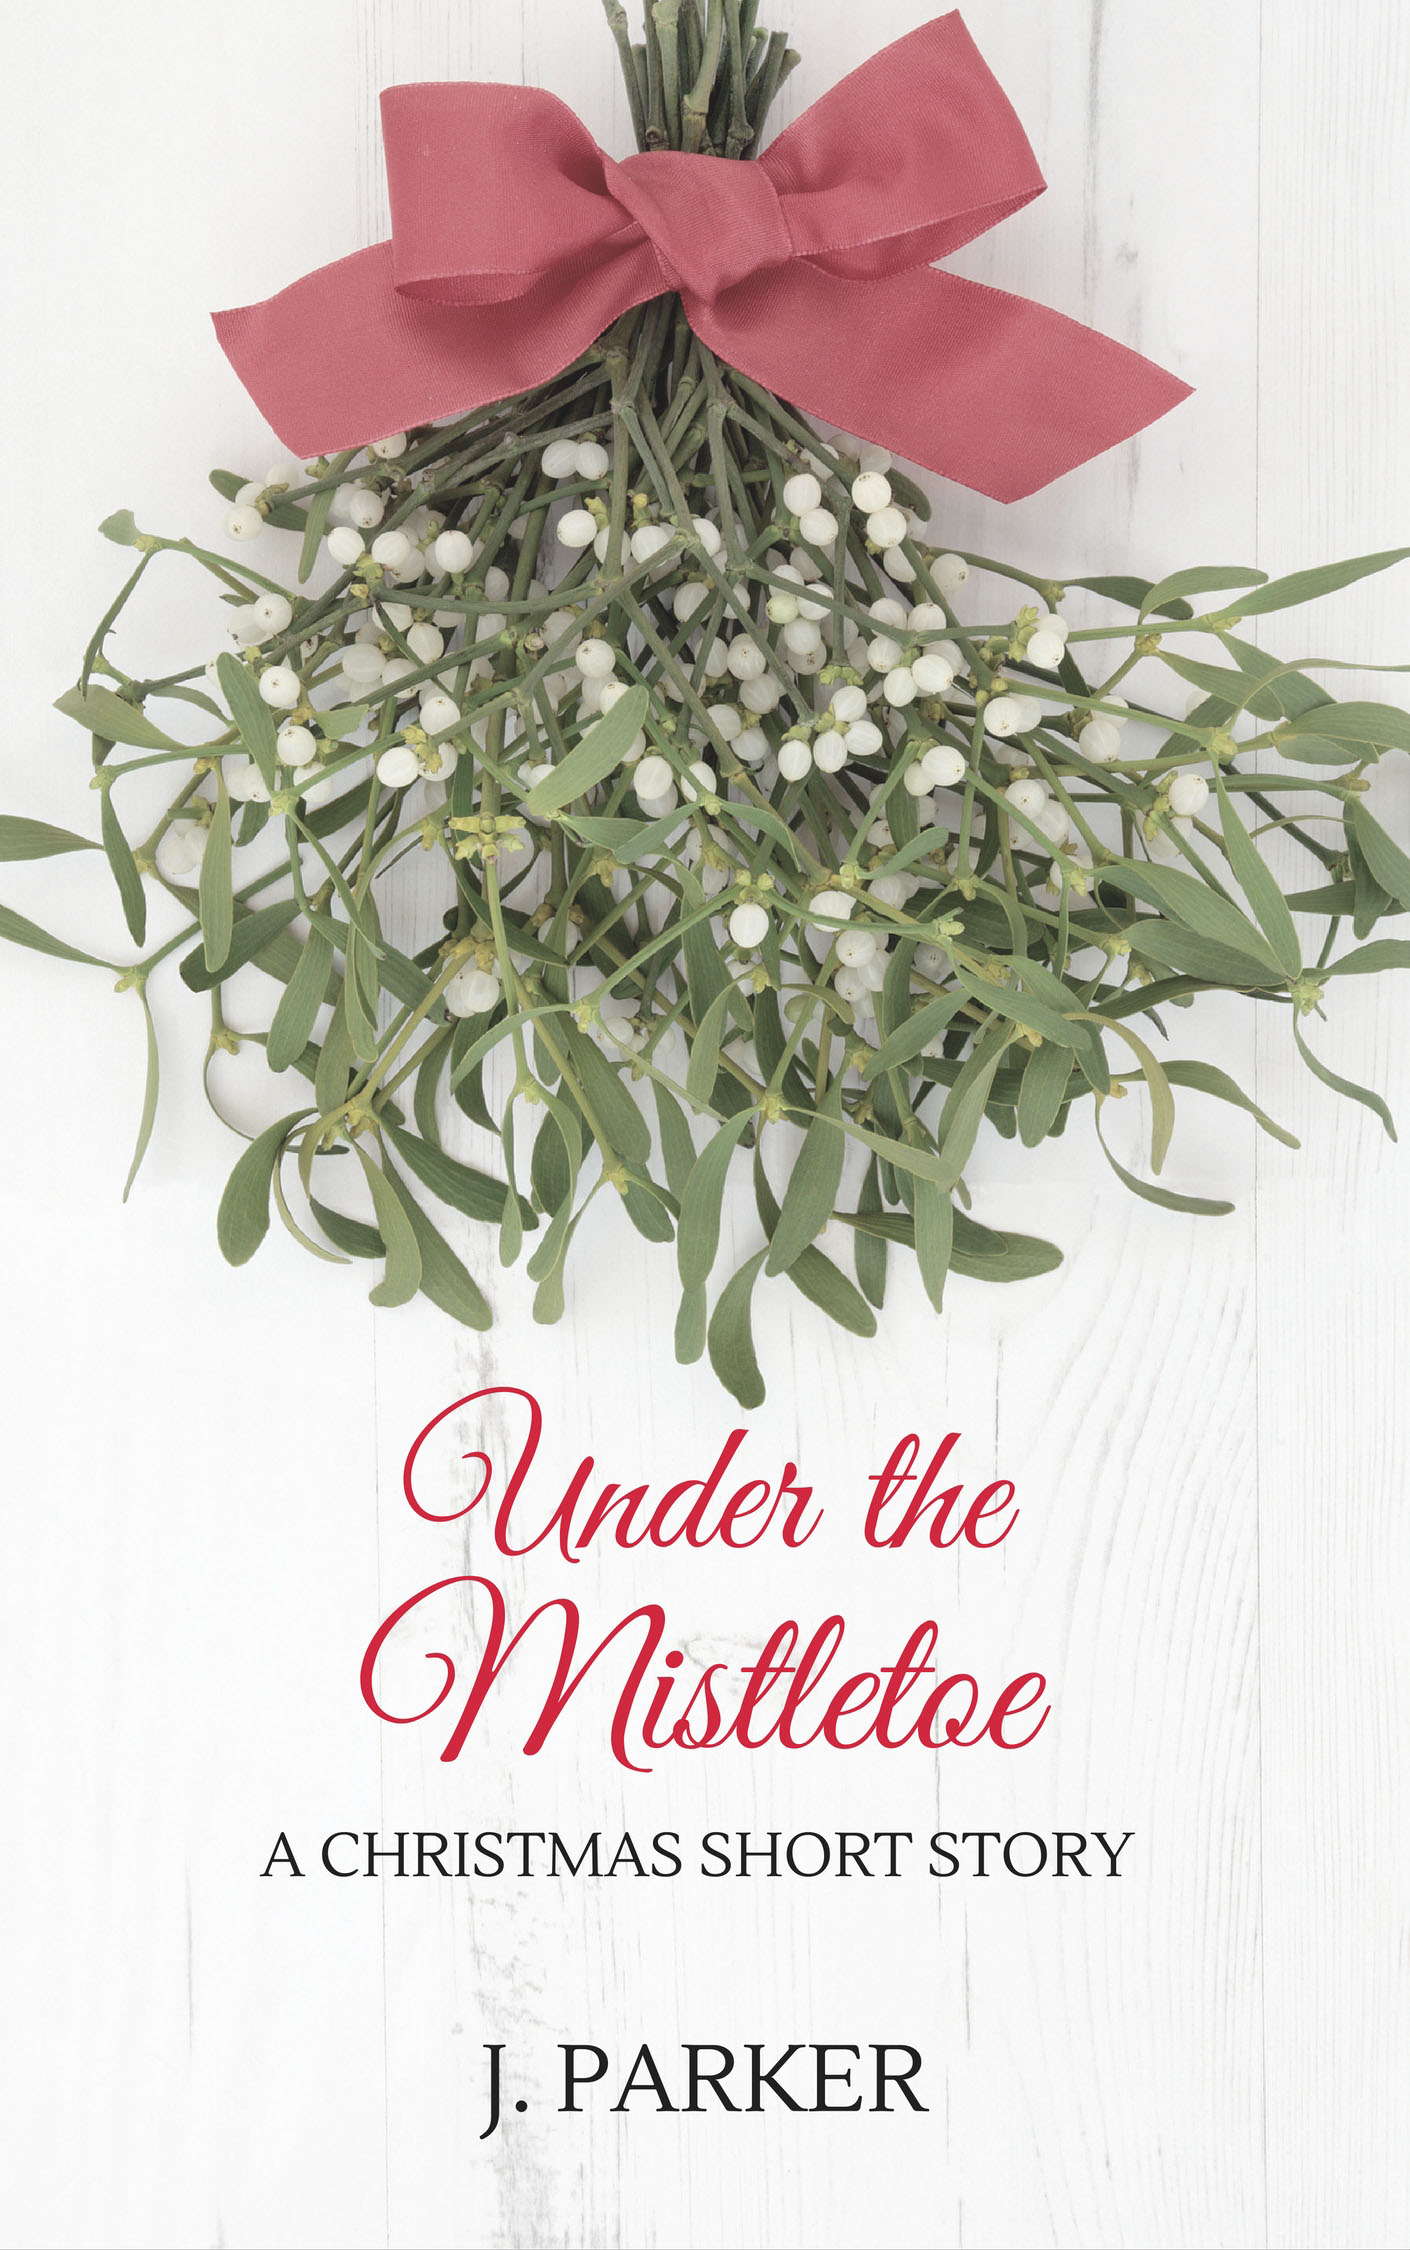 Under the Mistletoe: A Christmas Short Story